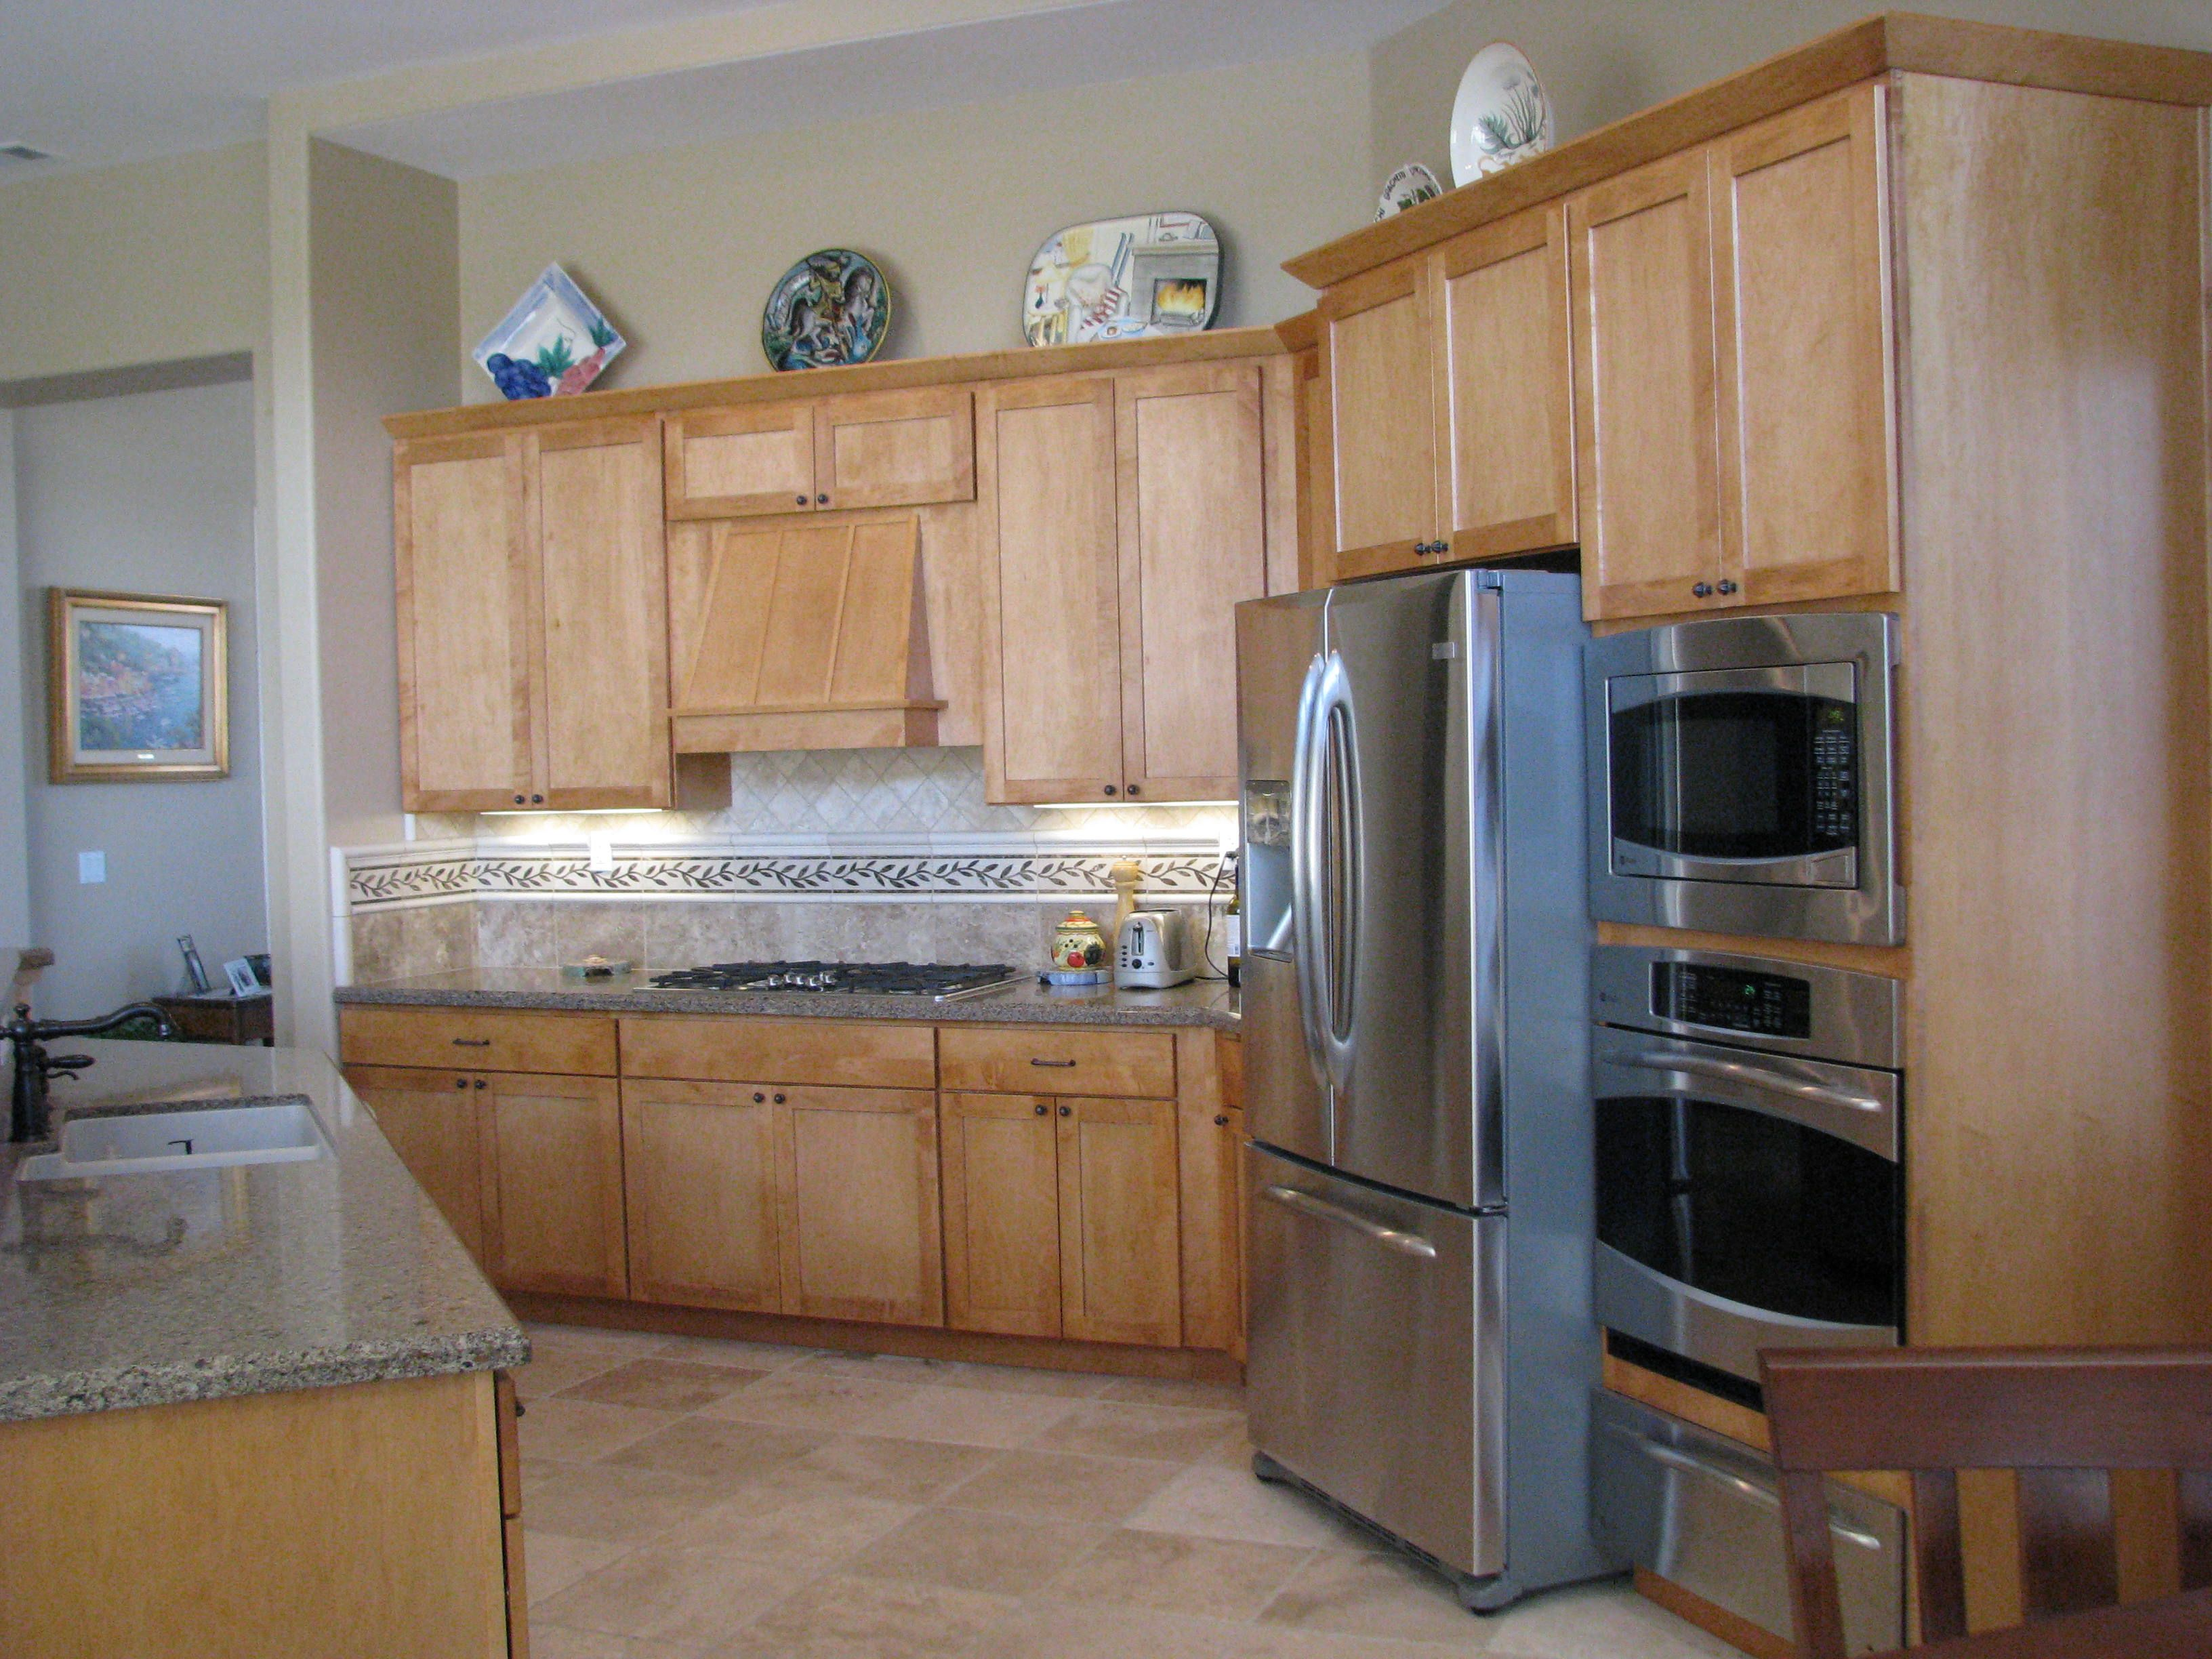 Maple Cabinetry Travertine Floors And Backsplash Quartz Countertops Maple Kitchen Cabinets Maple Kitchen Maple Cabinets